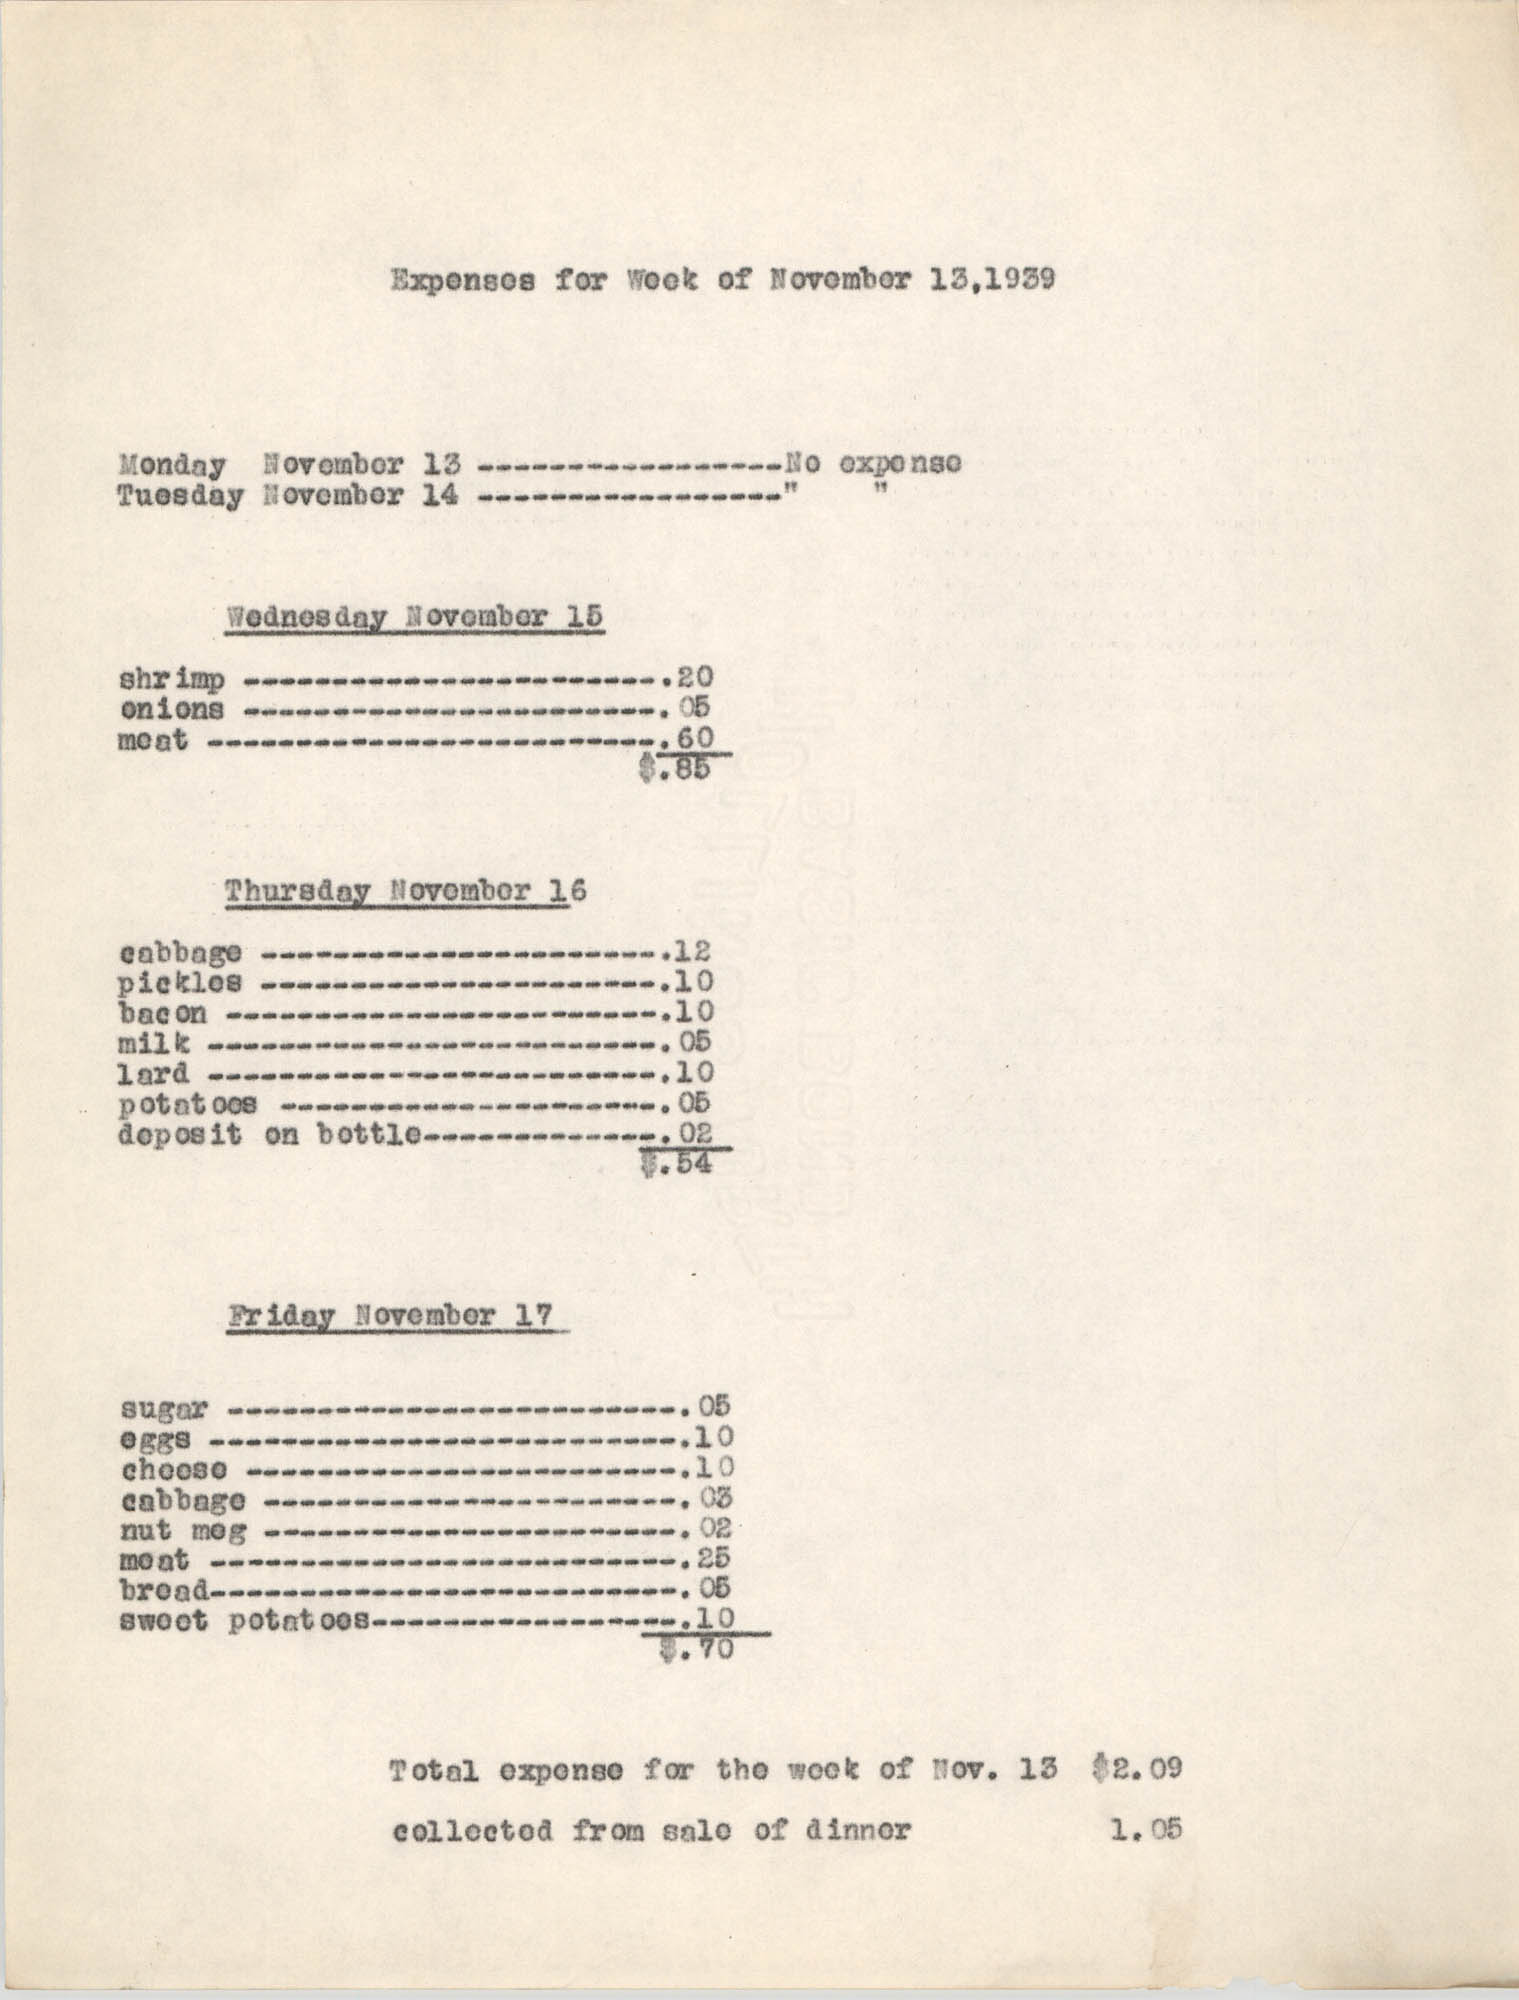 Monthly Report for the Coming Street Y.W.C.A., Expenses for November 1939, Page 2